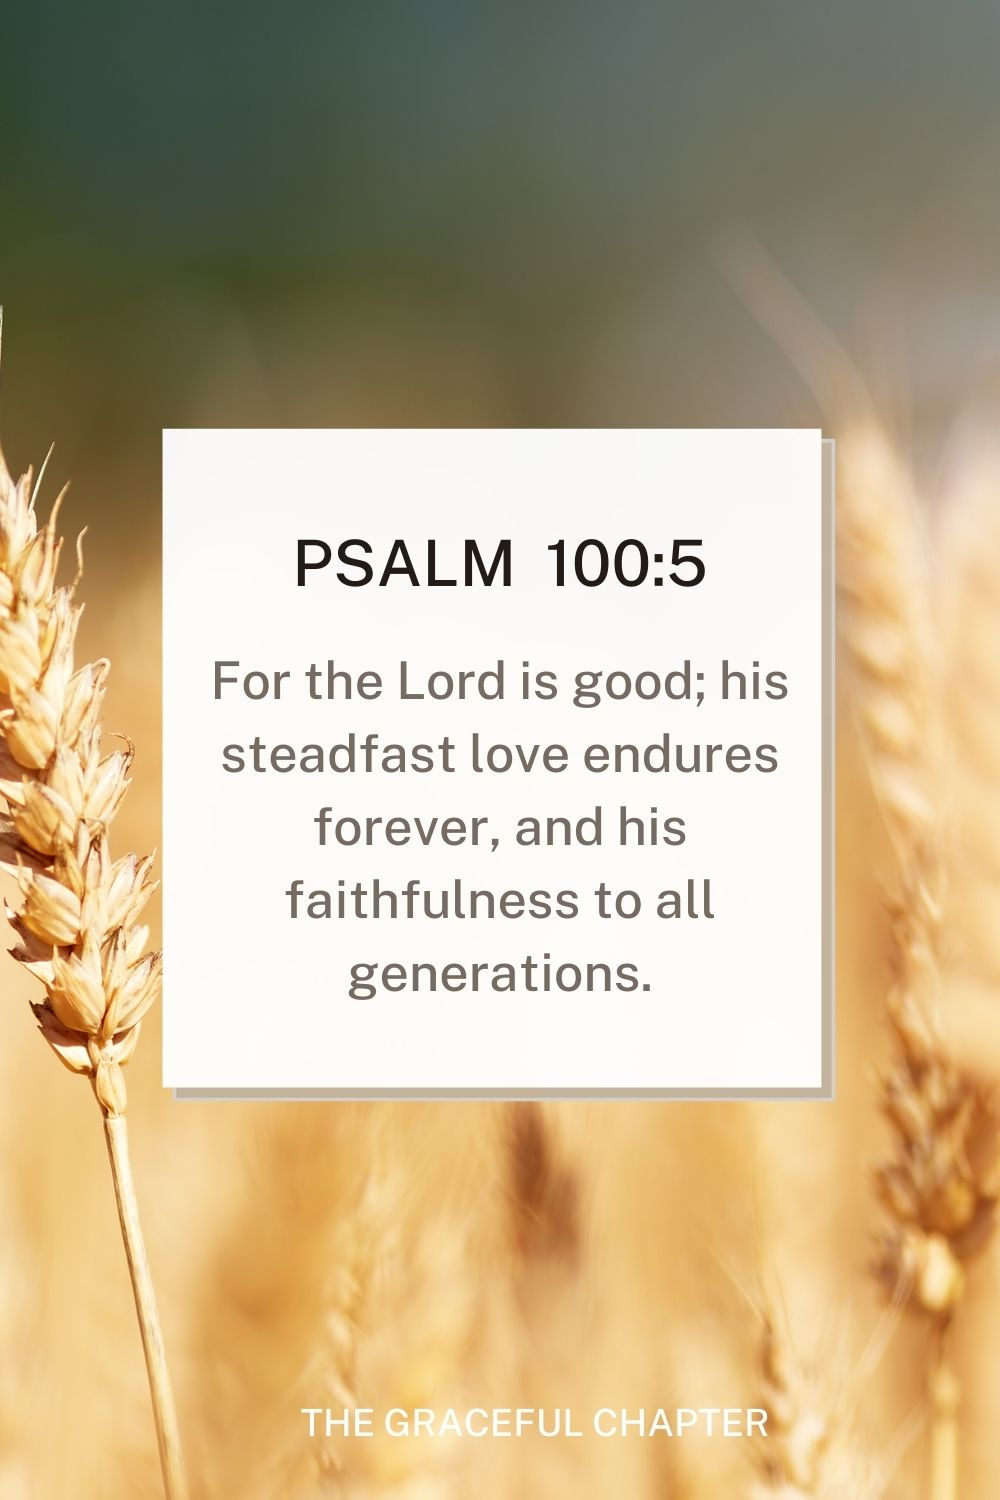 For the Lord is good; his steadfast love endures forever, and his faithfulness to all generations. Psalm 100:5